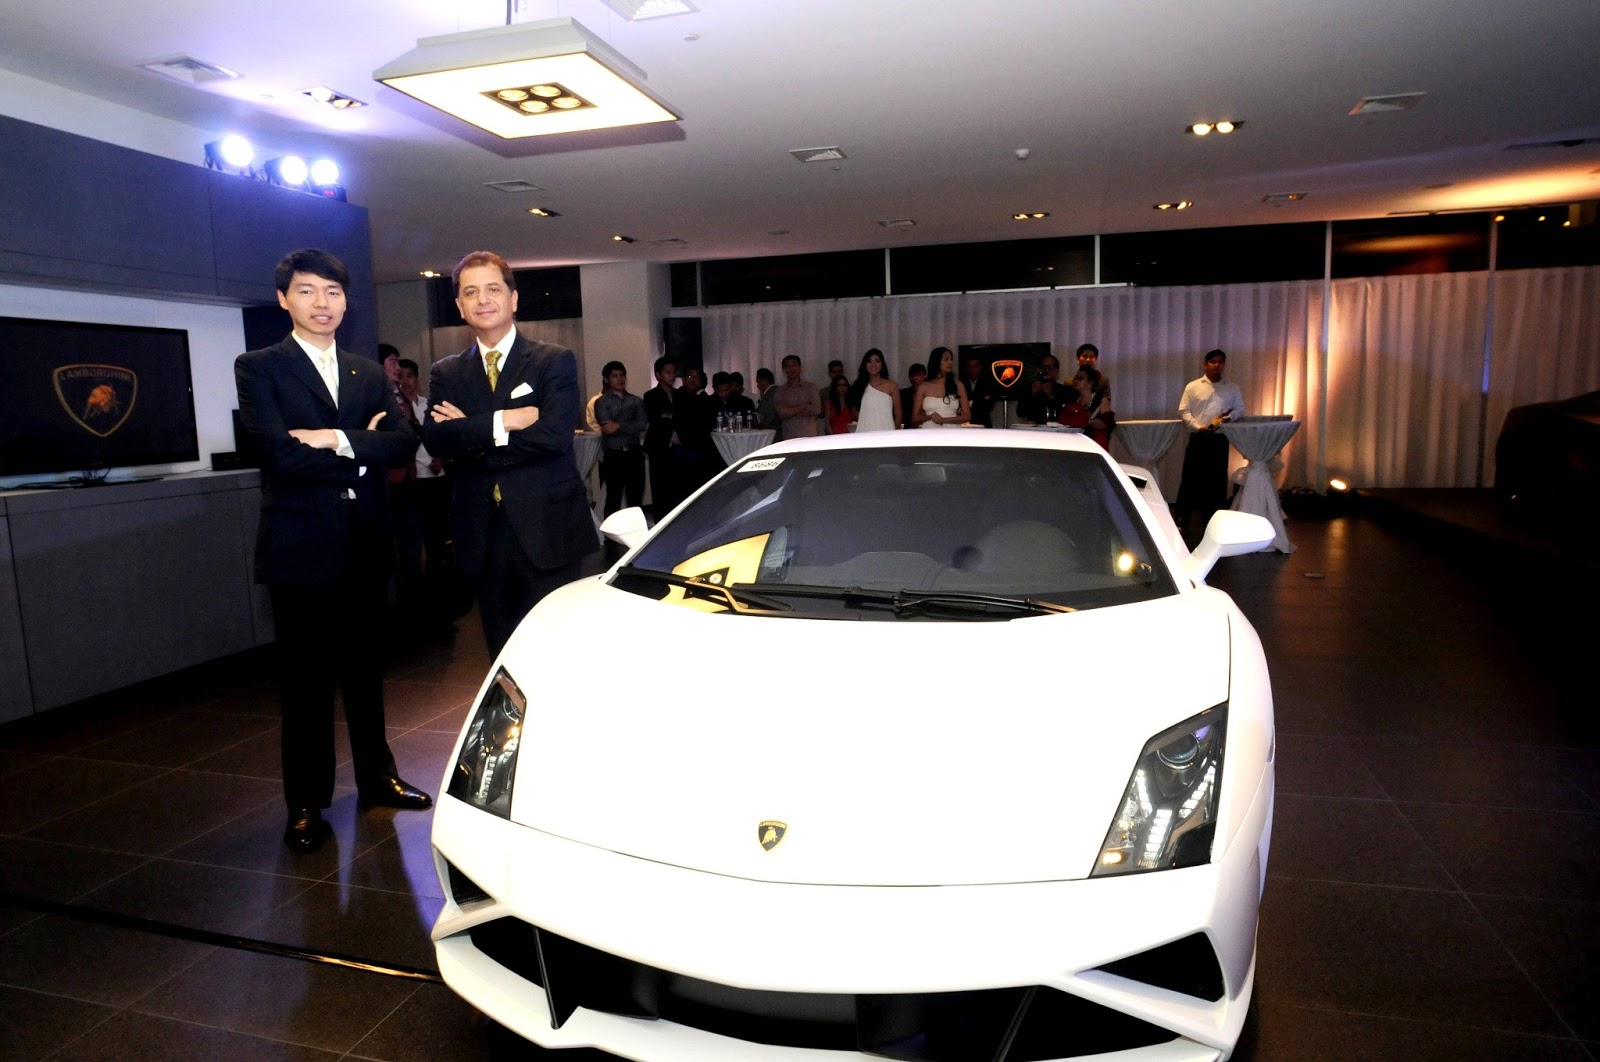 guy bitcoin price with this one a squad bought seater alpha lamborghini official